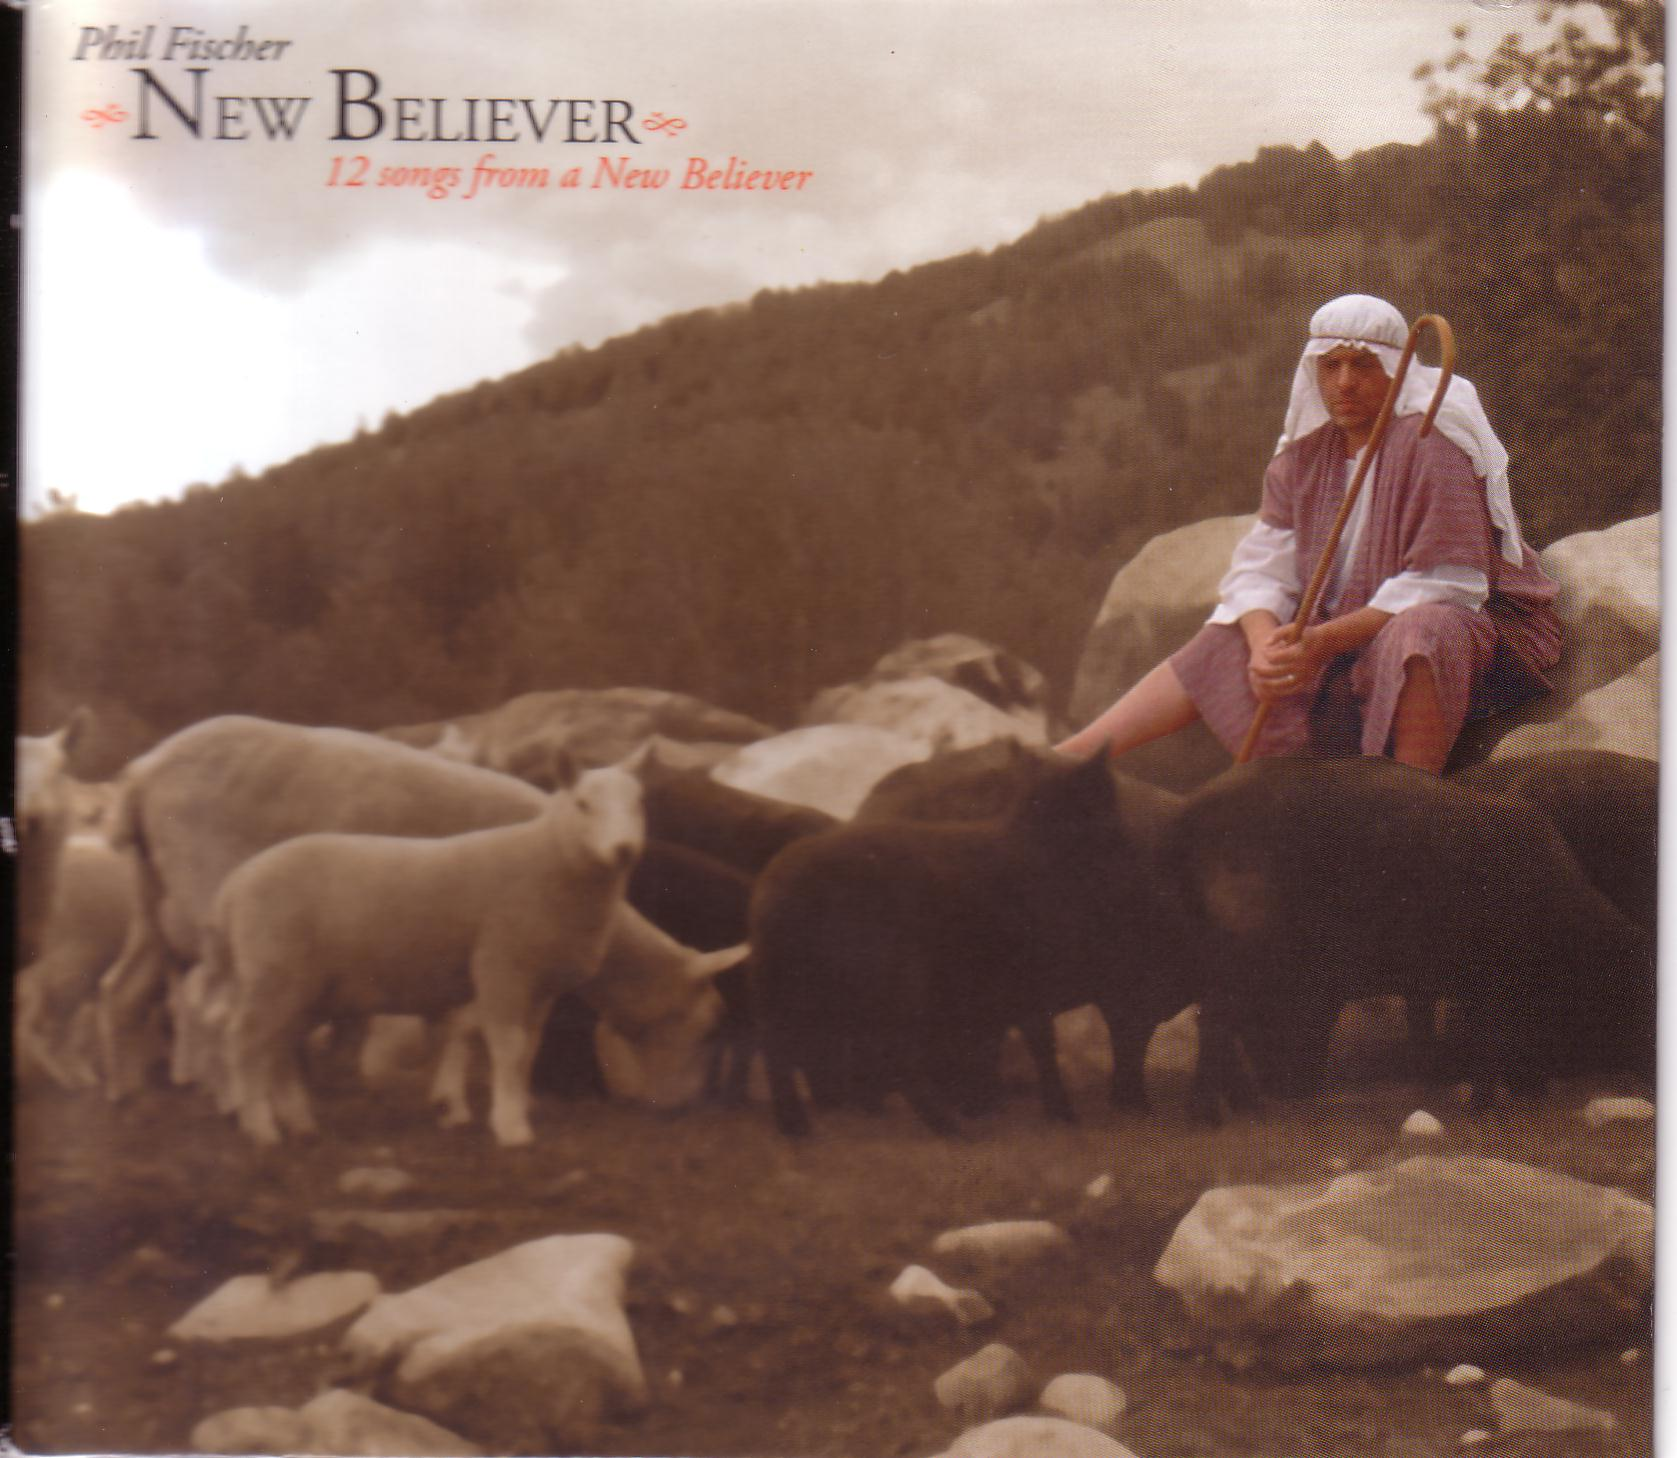 Phil Fischer - New Believer